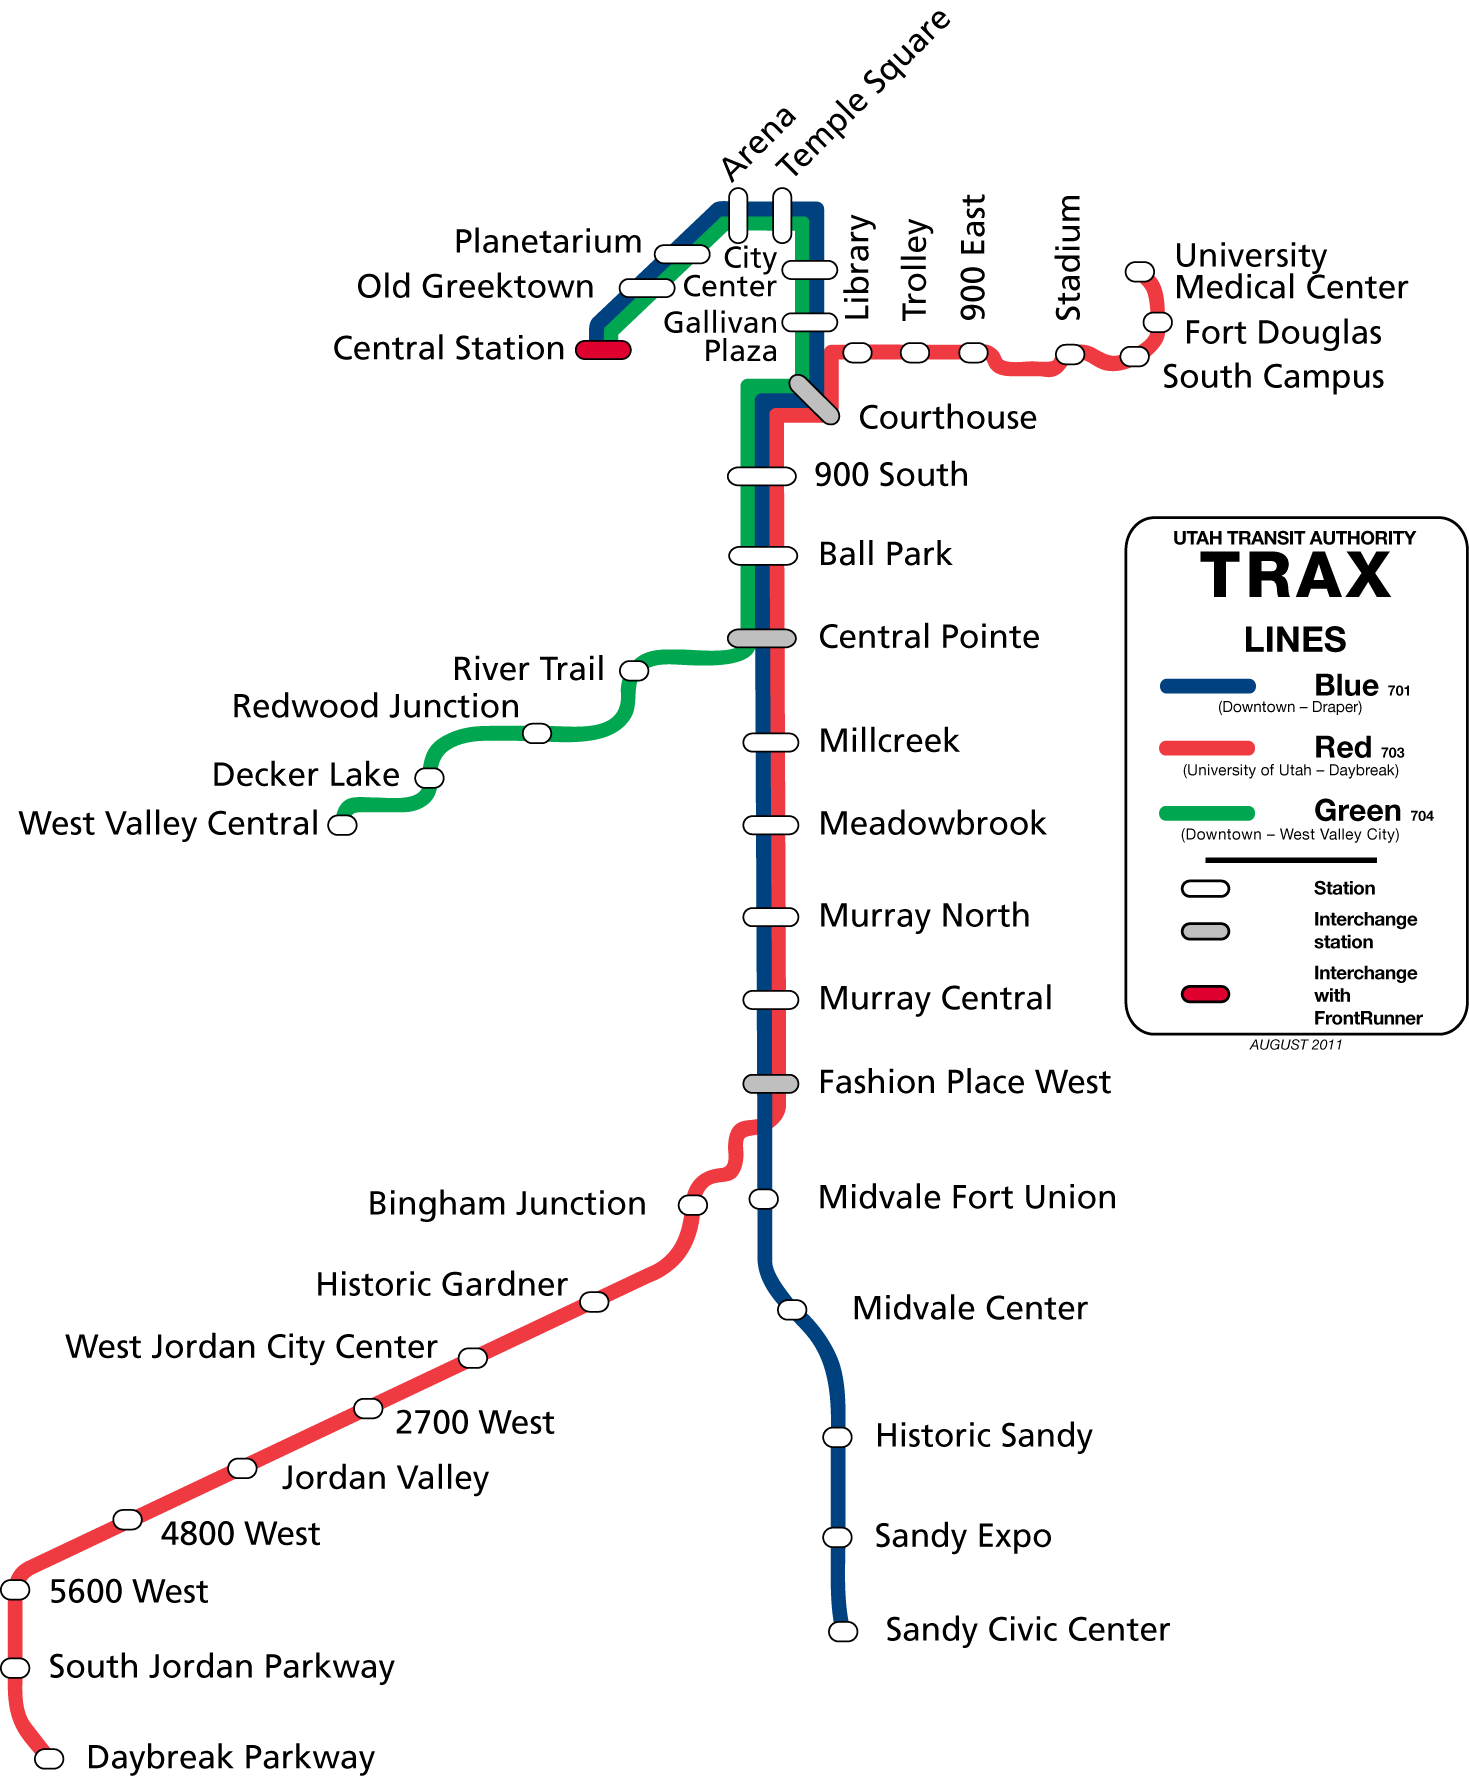 File:Trax system map   August 2011.png   Wikimedia Commons